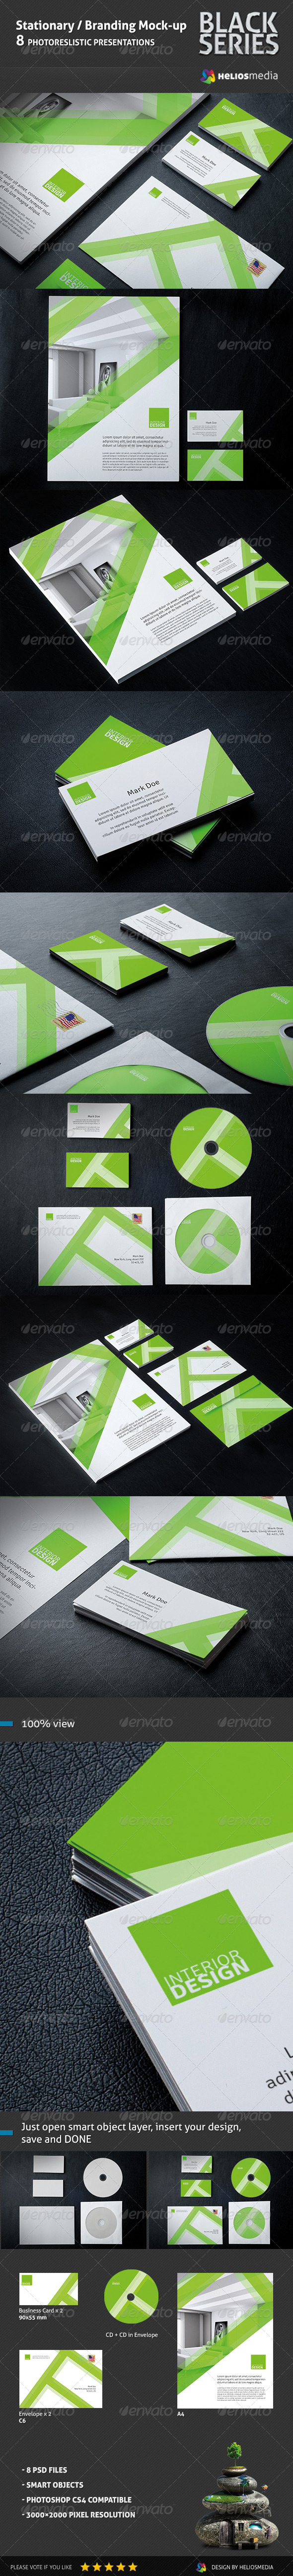 Stationery / Branding BlackSeries Mockup - Stationery Print